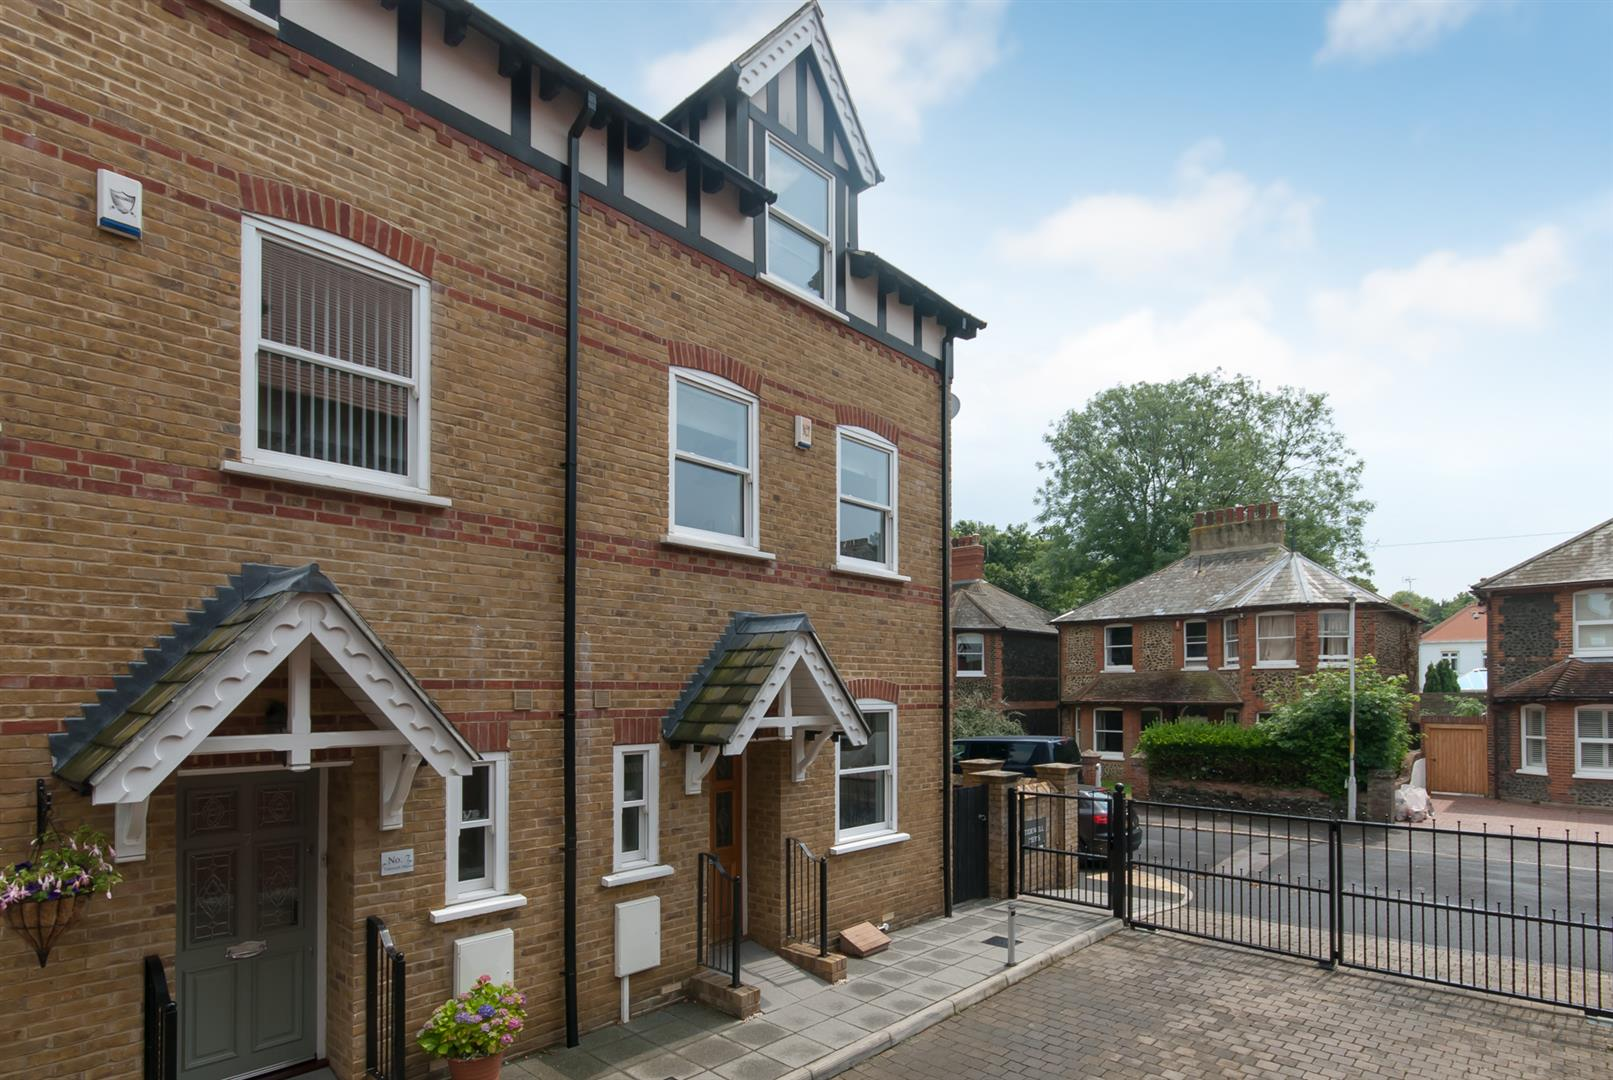 4 Bedrooms House for sale in Tidewell Mews, Westgate-On-Sea